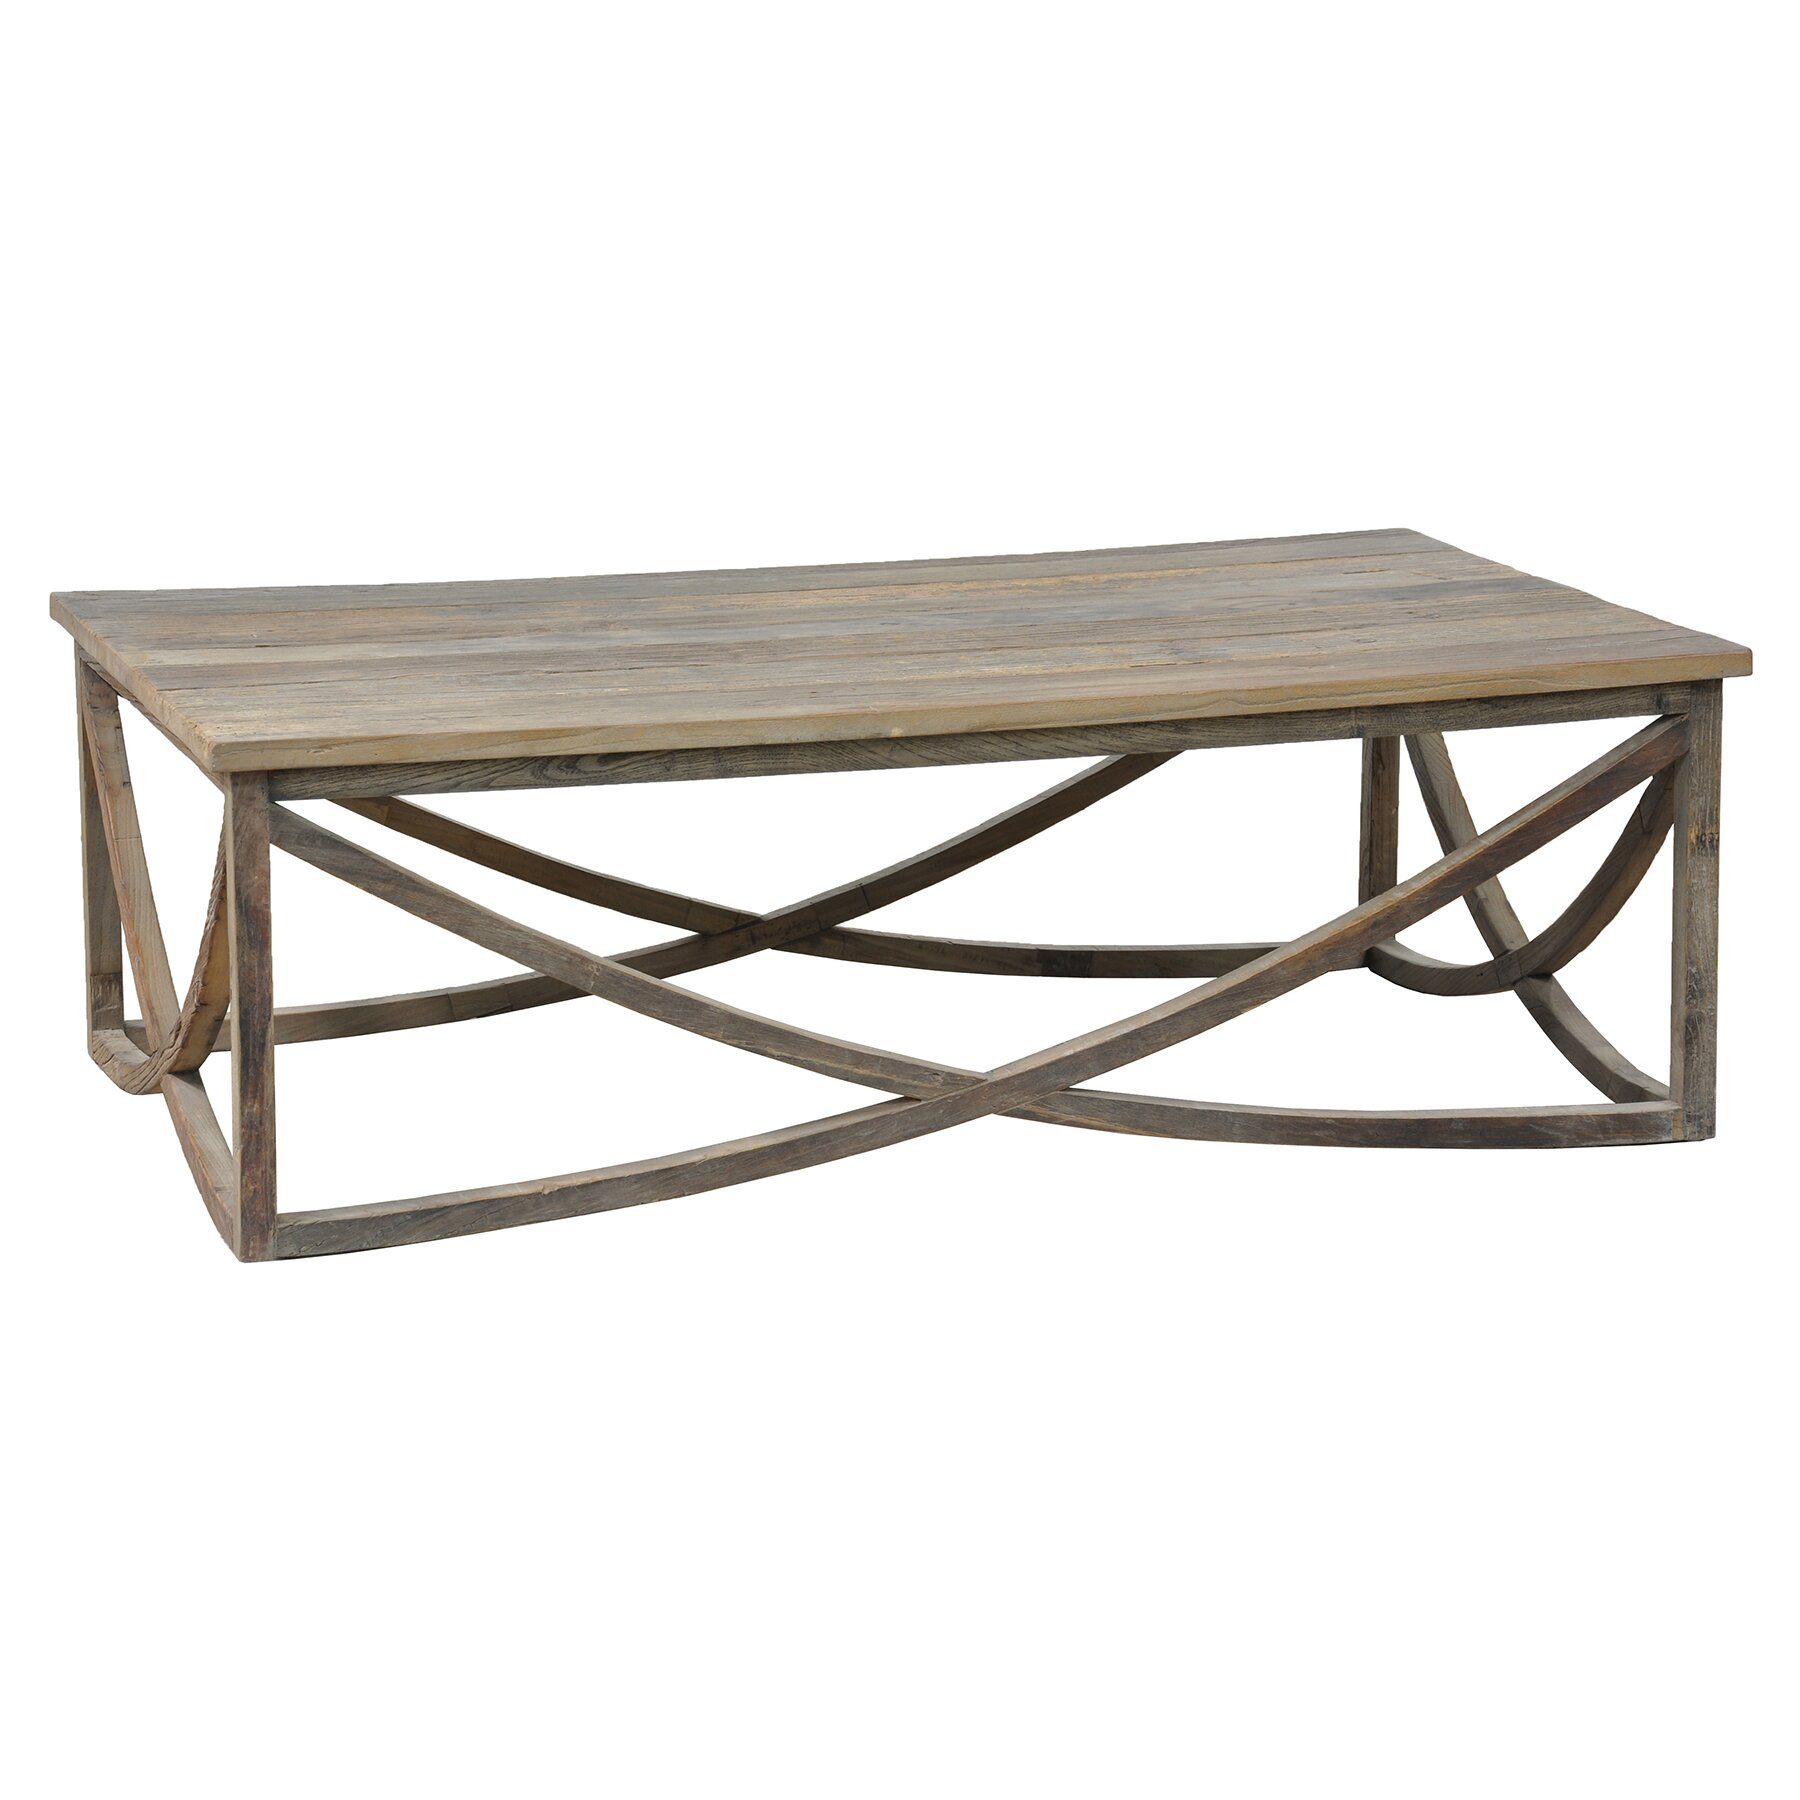 Laurel foundry modern farmhouse corning coffee table for Modern farmhouse coffee table